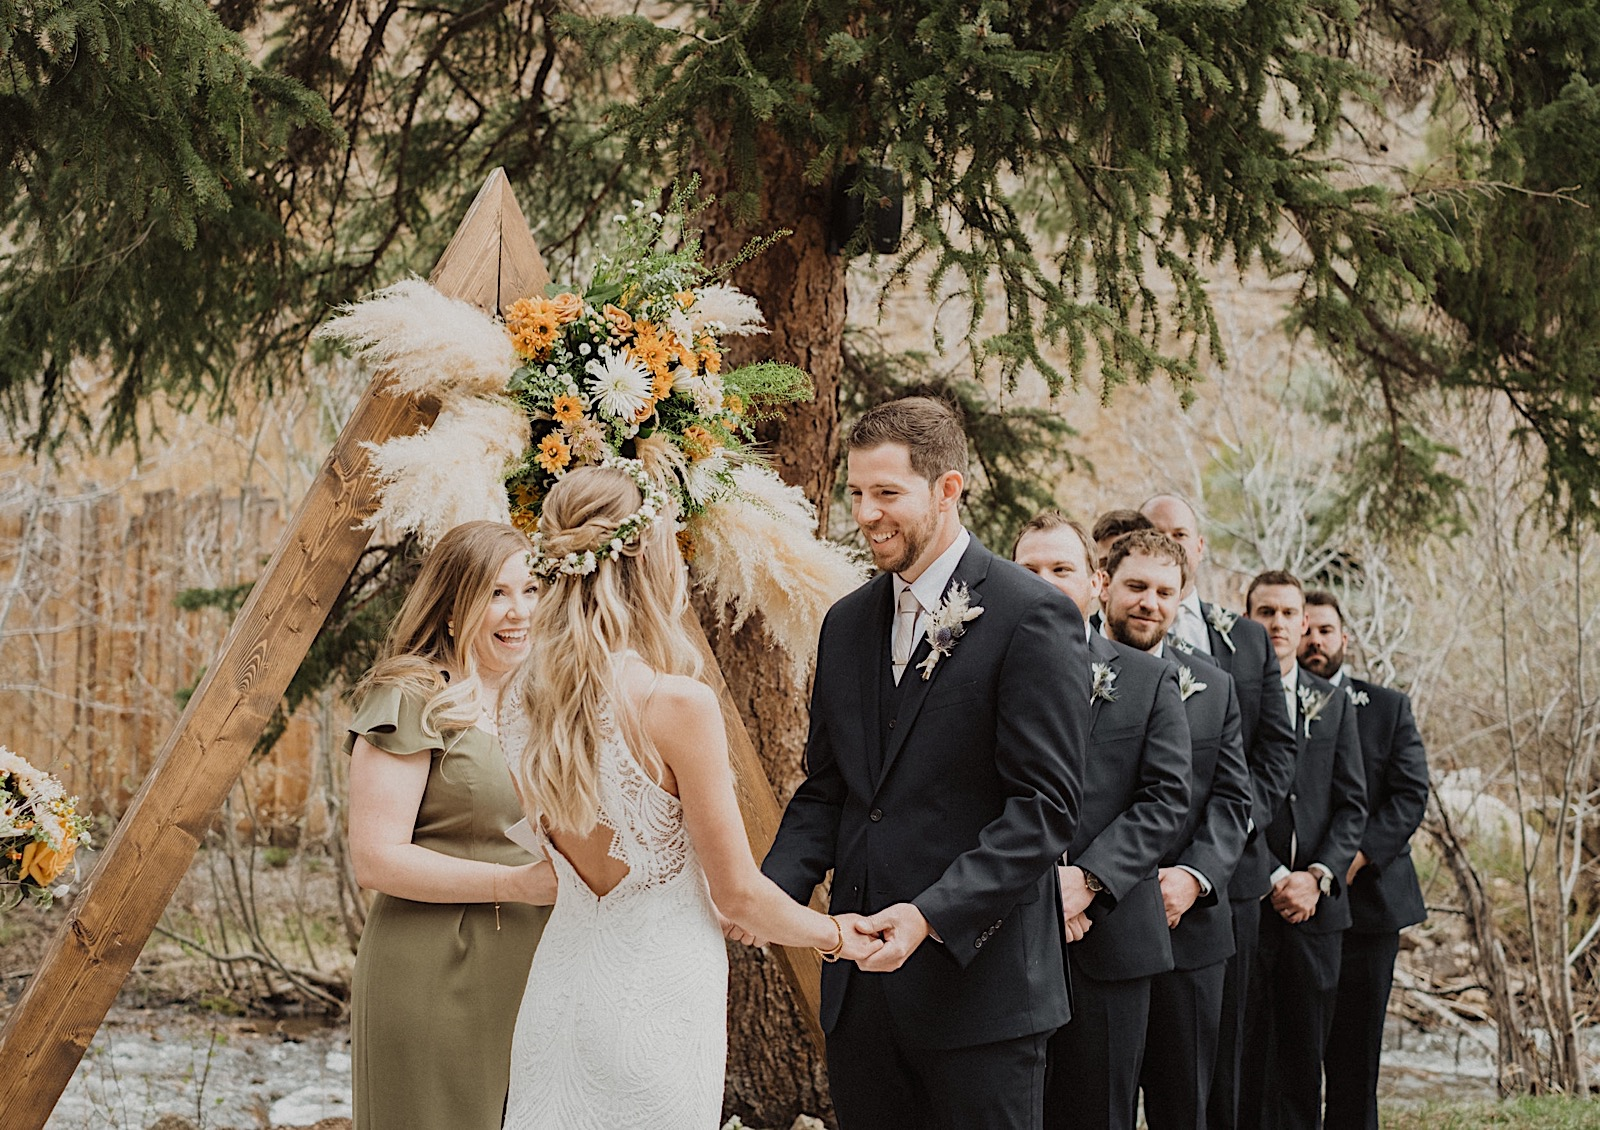 Blackstone Rivers Ranch Wedding, Colorado Wedding Photographer, Colorado Elopement Photographer, Colorado Mountain Wedding, Colorado Wedding Ideas, Colorado Wedding Inspiration, Destination Wedding in Colorado, Places to Elope in Colorado, Places to get married in Colorado, Boho Wedding Inspiration, Wedding Photography, Wedding ideas, Wedding Inspiration, Wedding Ceremony